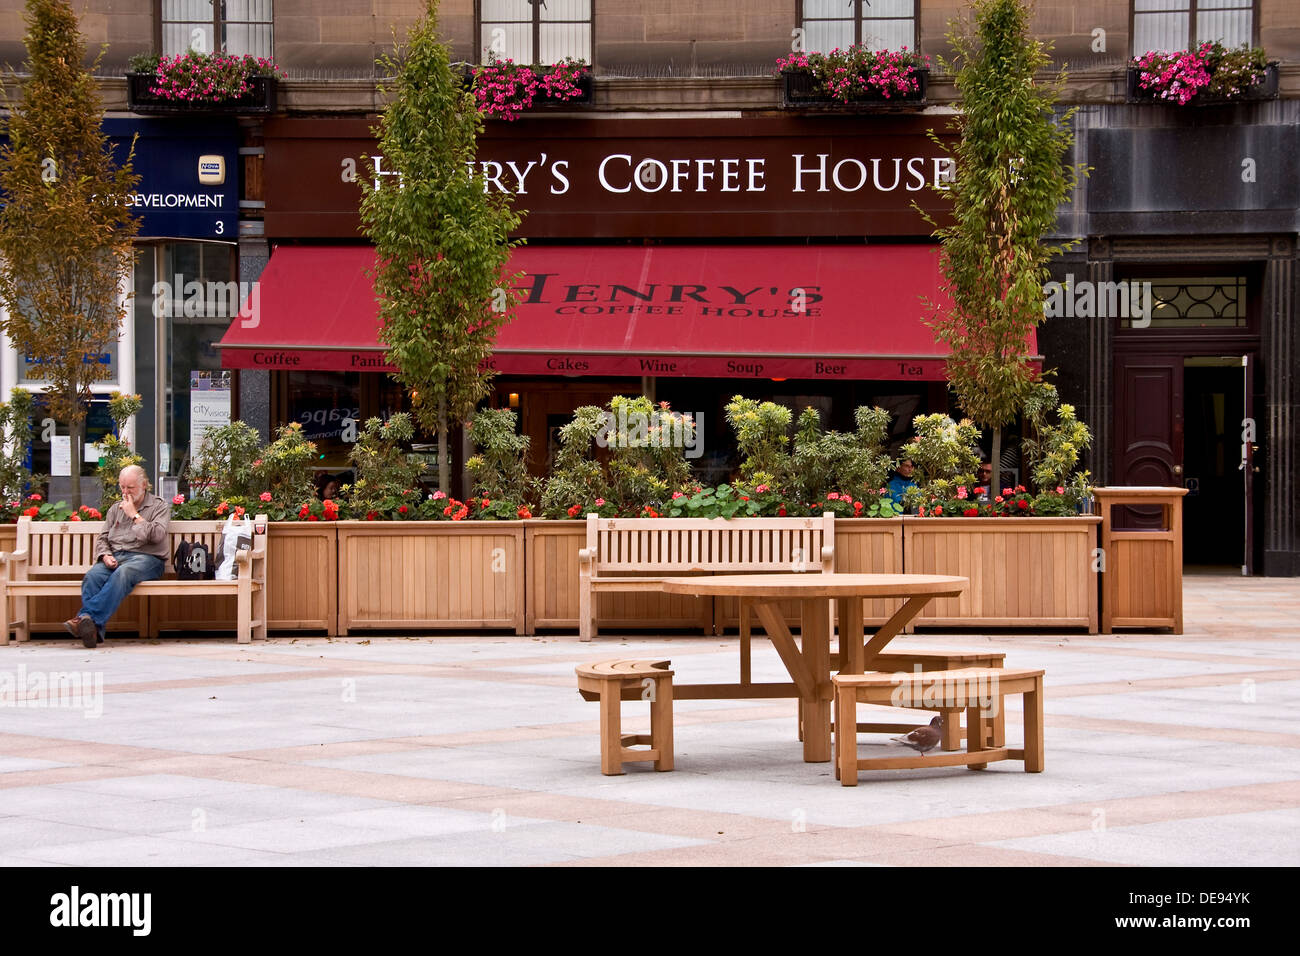 Man sitting eating outside at the City Square while people enjoying refreshments inside the Henry`s Coffee House in Dundee, UK - Stock Image